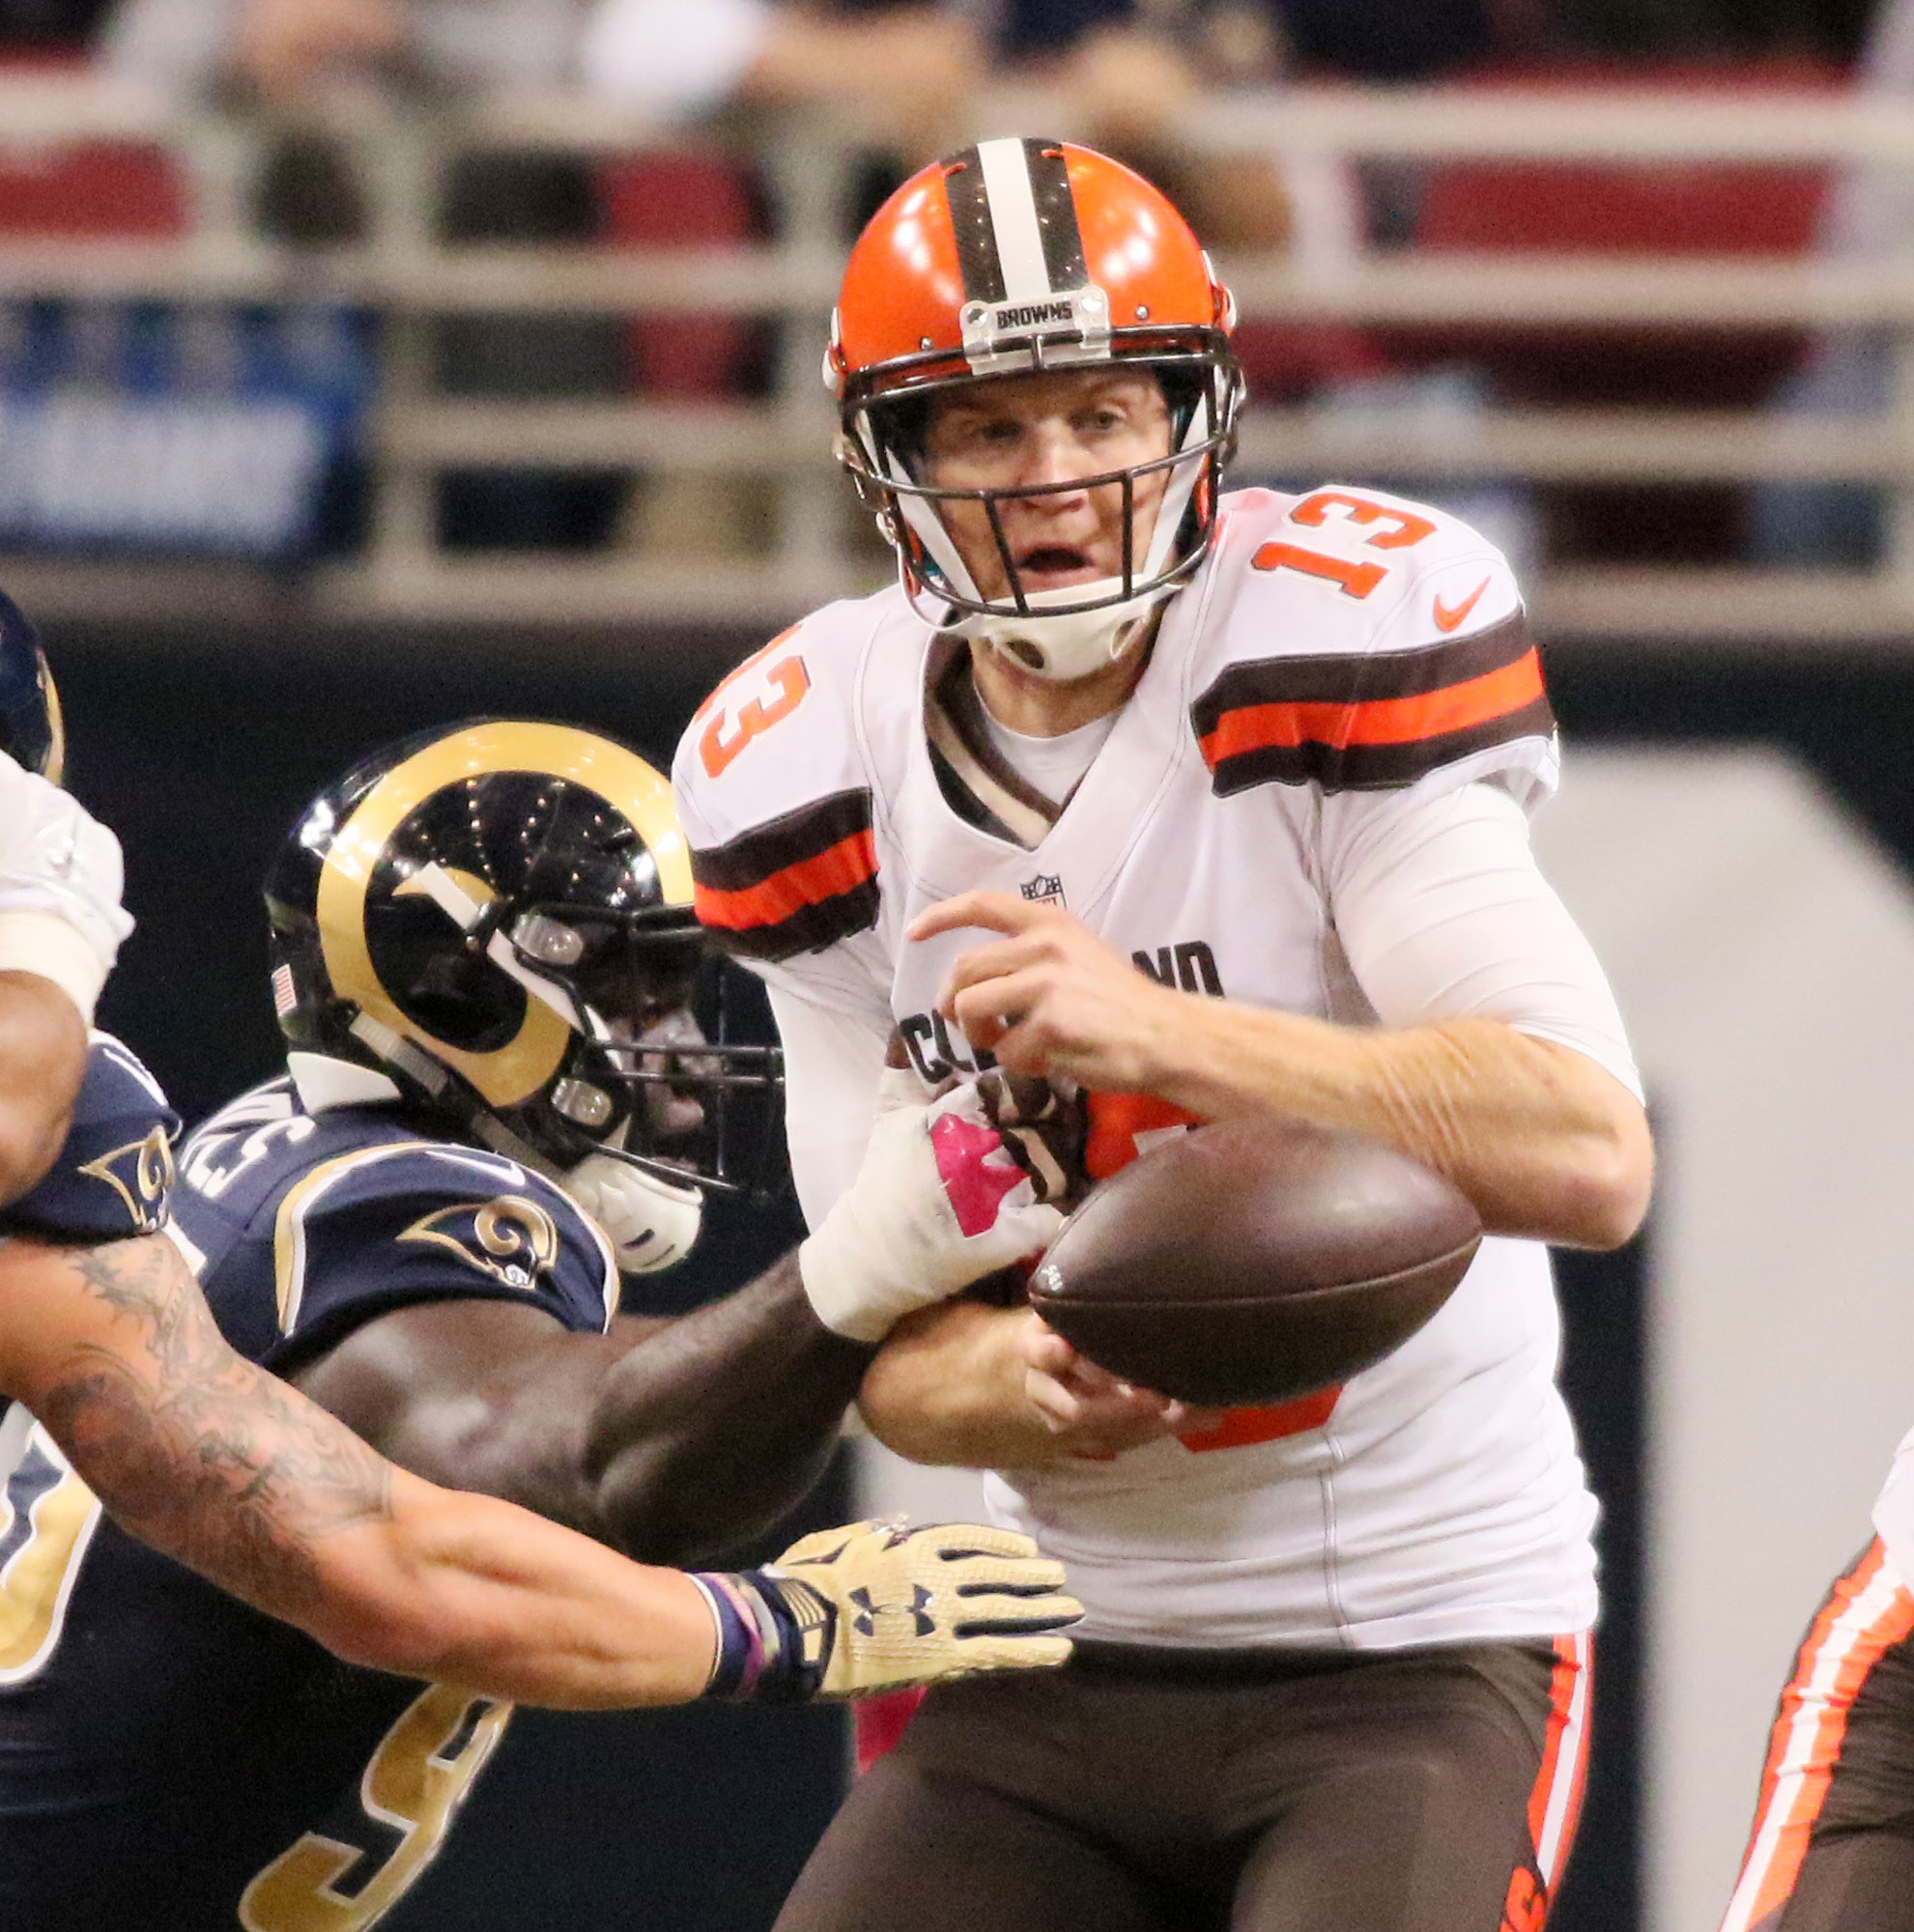 Cleveland Browns quarterback Josh McCown fumbles the ball as he is sacked by St. Louis Rams defensive end William Hayes, left, in the first quarter of an NFL football game on Sunday, Oct. 25, 2015, in St. Louis.  The fumble was recovered by Rams linebacke